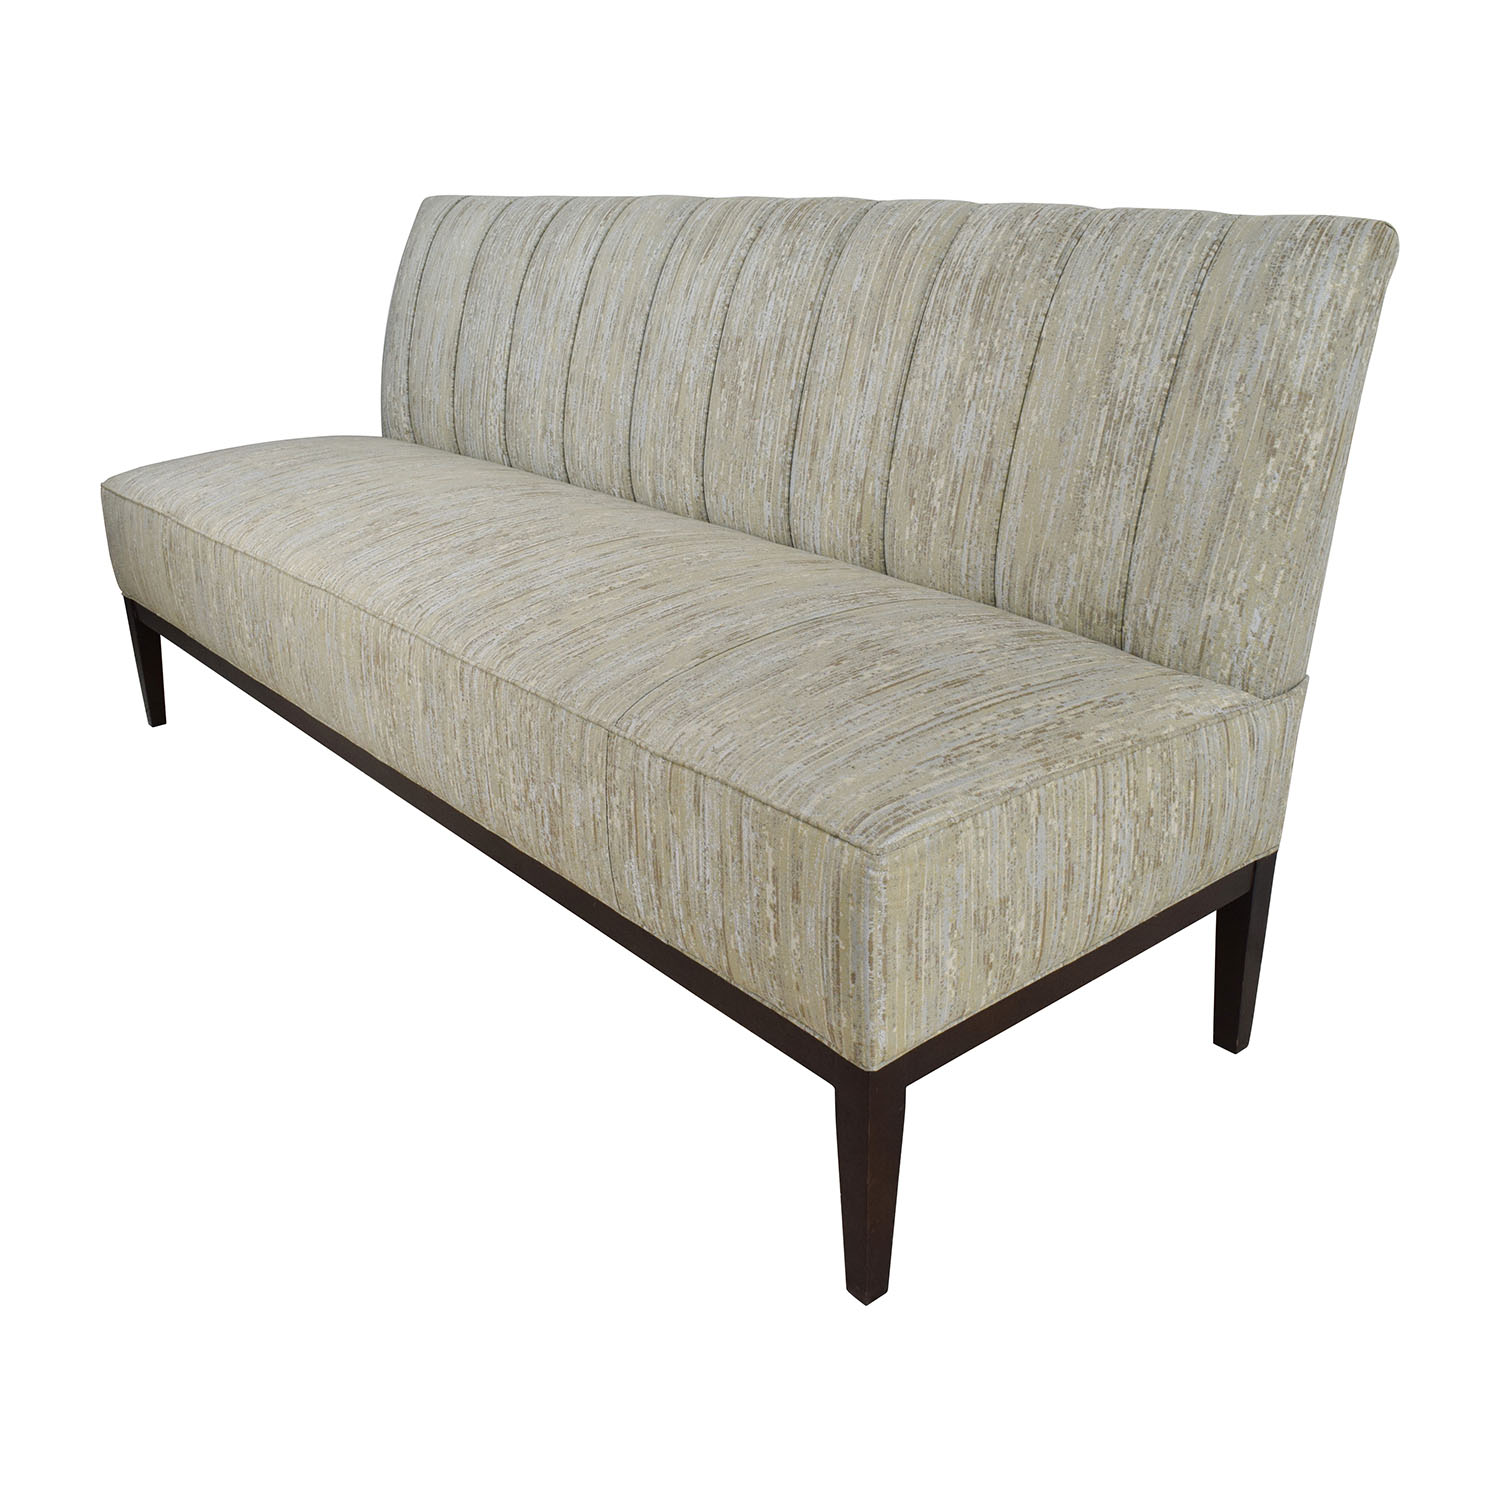 90% OFF - Sofa Banquet for Dining Table / Sofas